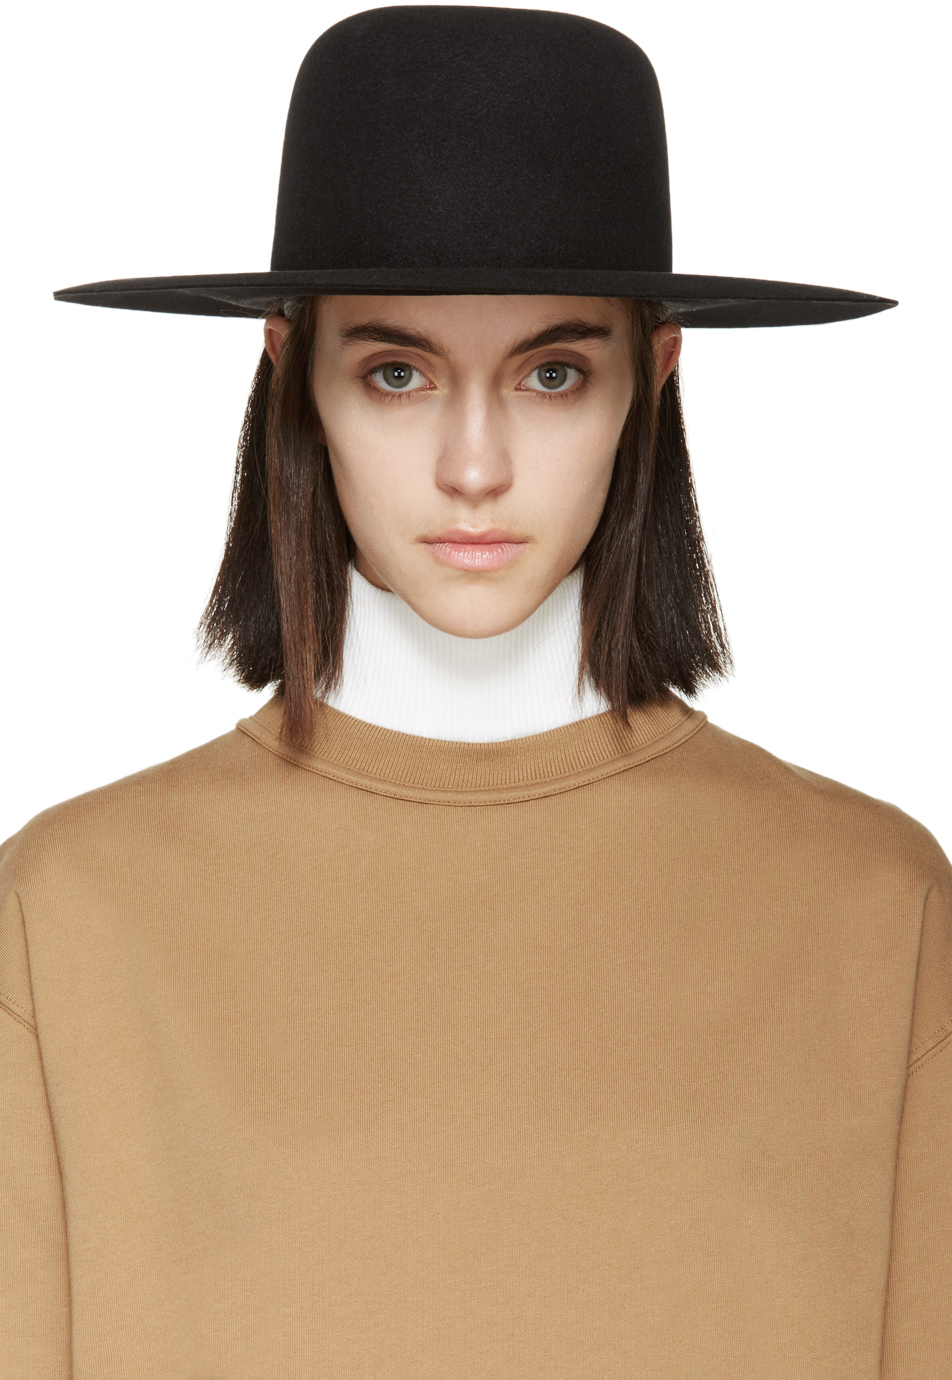 The Best Wide Brim Hats For Fall And How To Style Them 2019 Bee c4ed0b0710e5